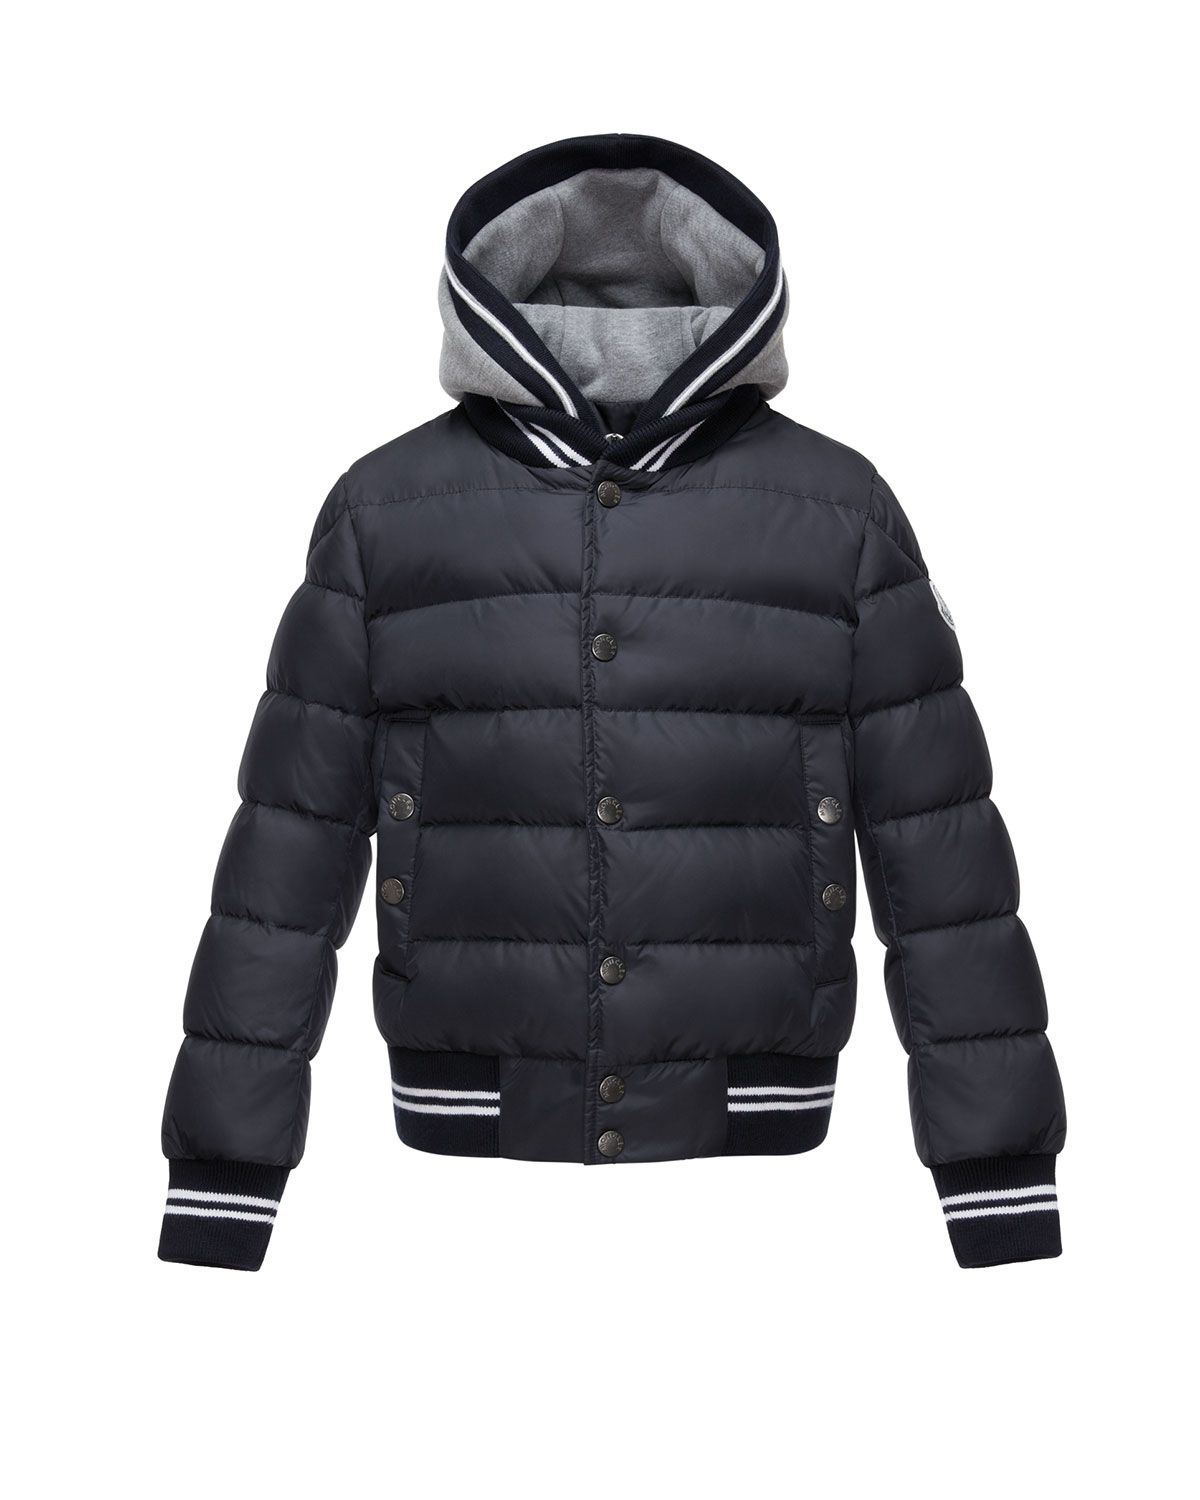 fdade923bd62 Auberie Tipped Puffer Jacket